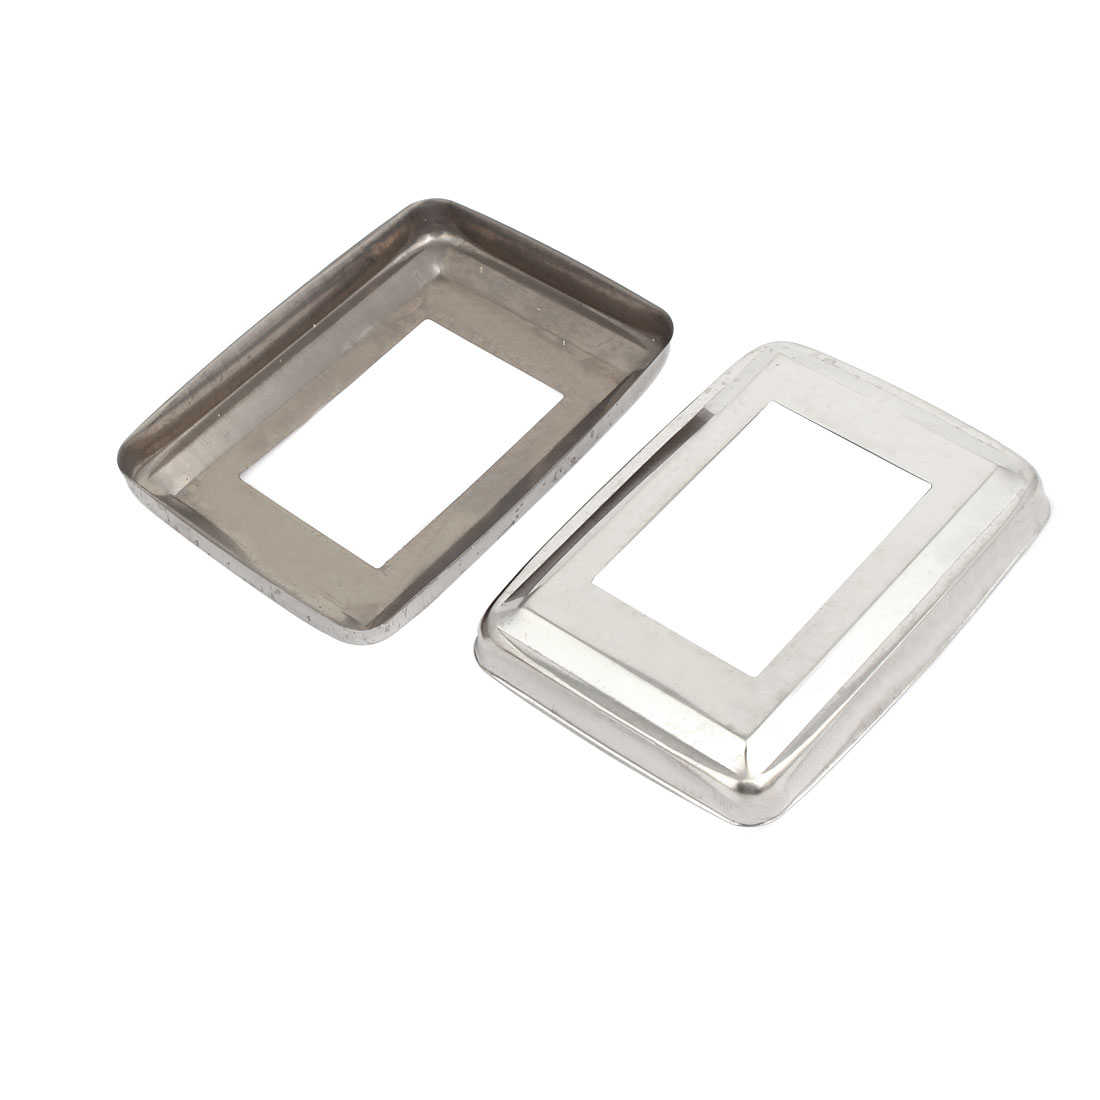 Unique Bargains 15pcs Ladder Handrail Hand Rail 60mm x 40mm Post Plate Cover 201 Stainless Steel